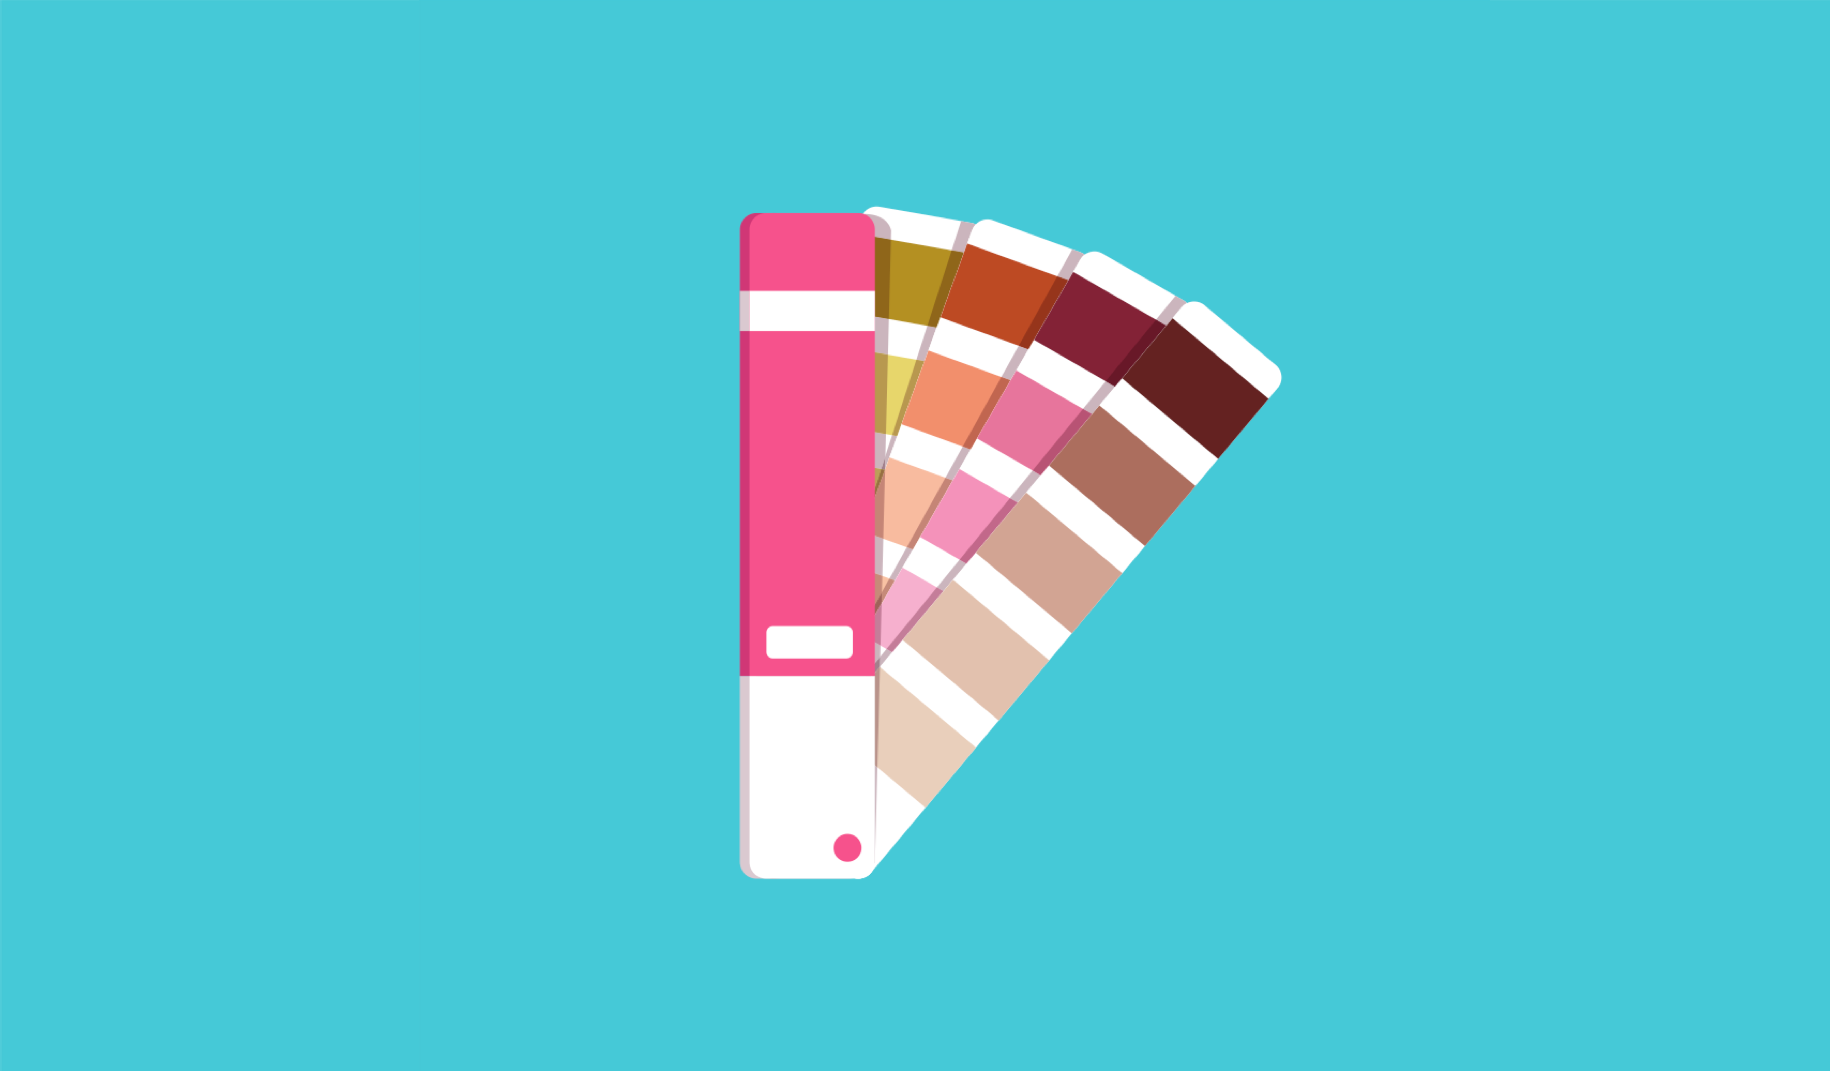 Illustration of color swatches